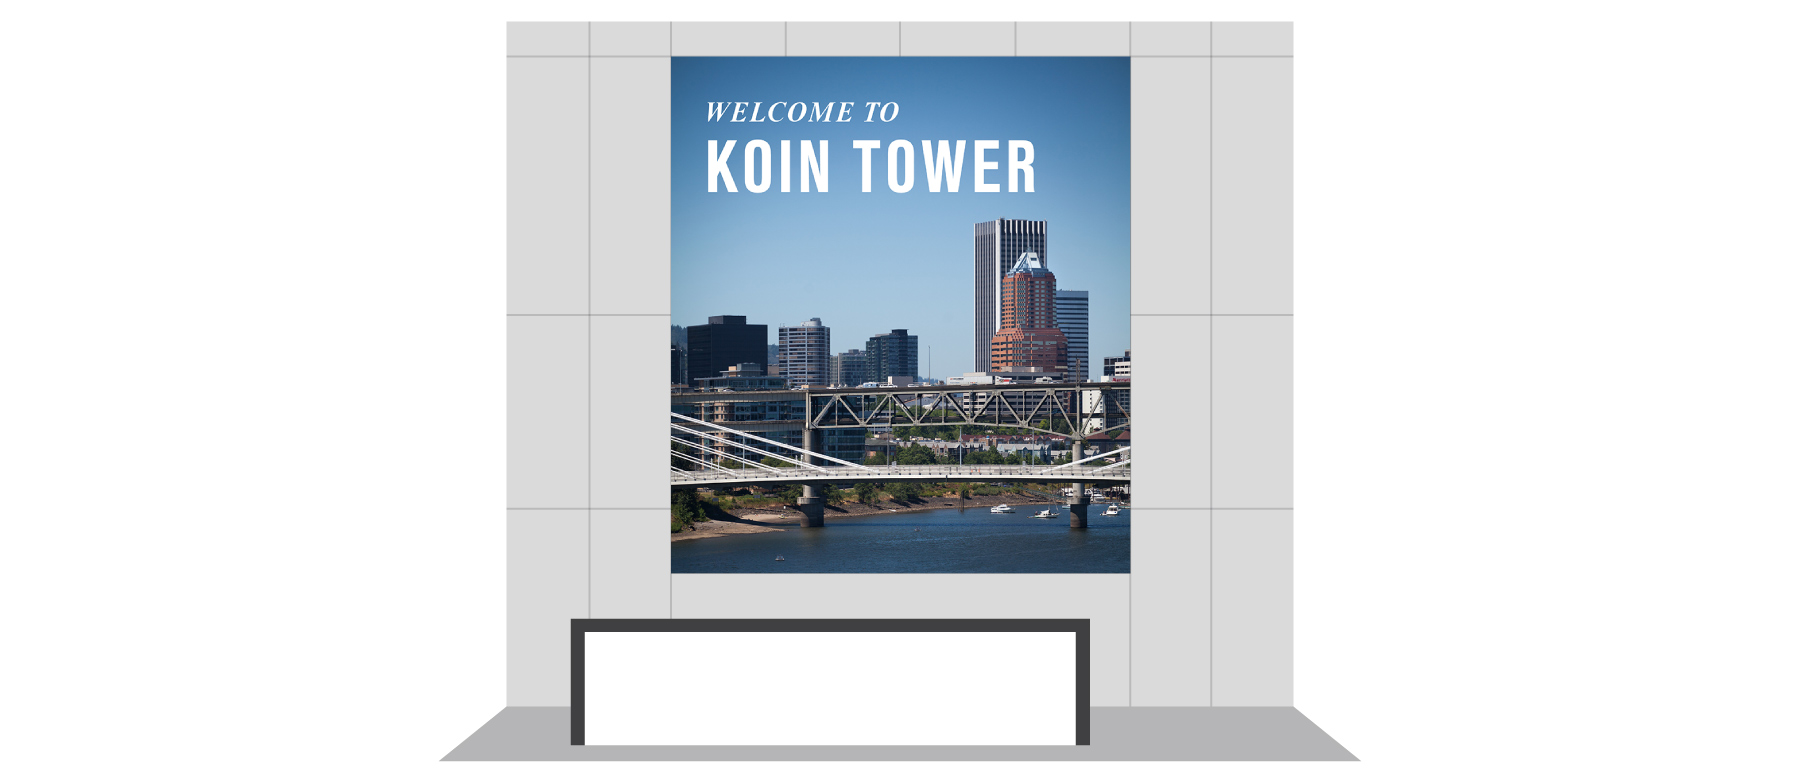 koin-media-wall-ad-mockup.jpg